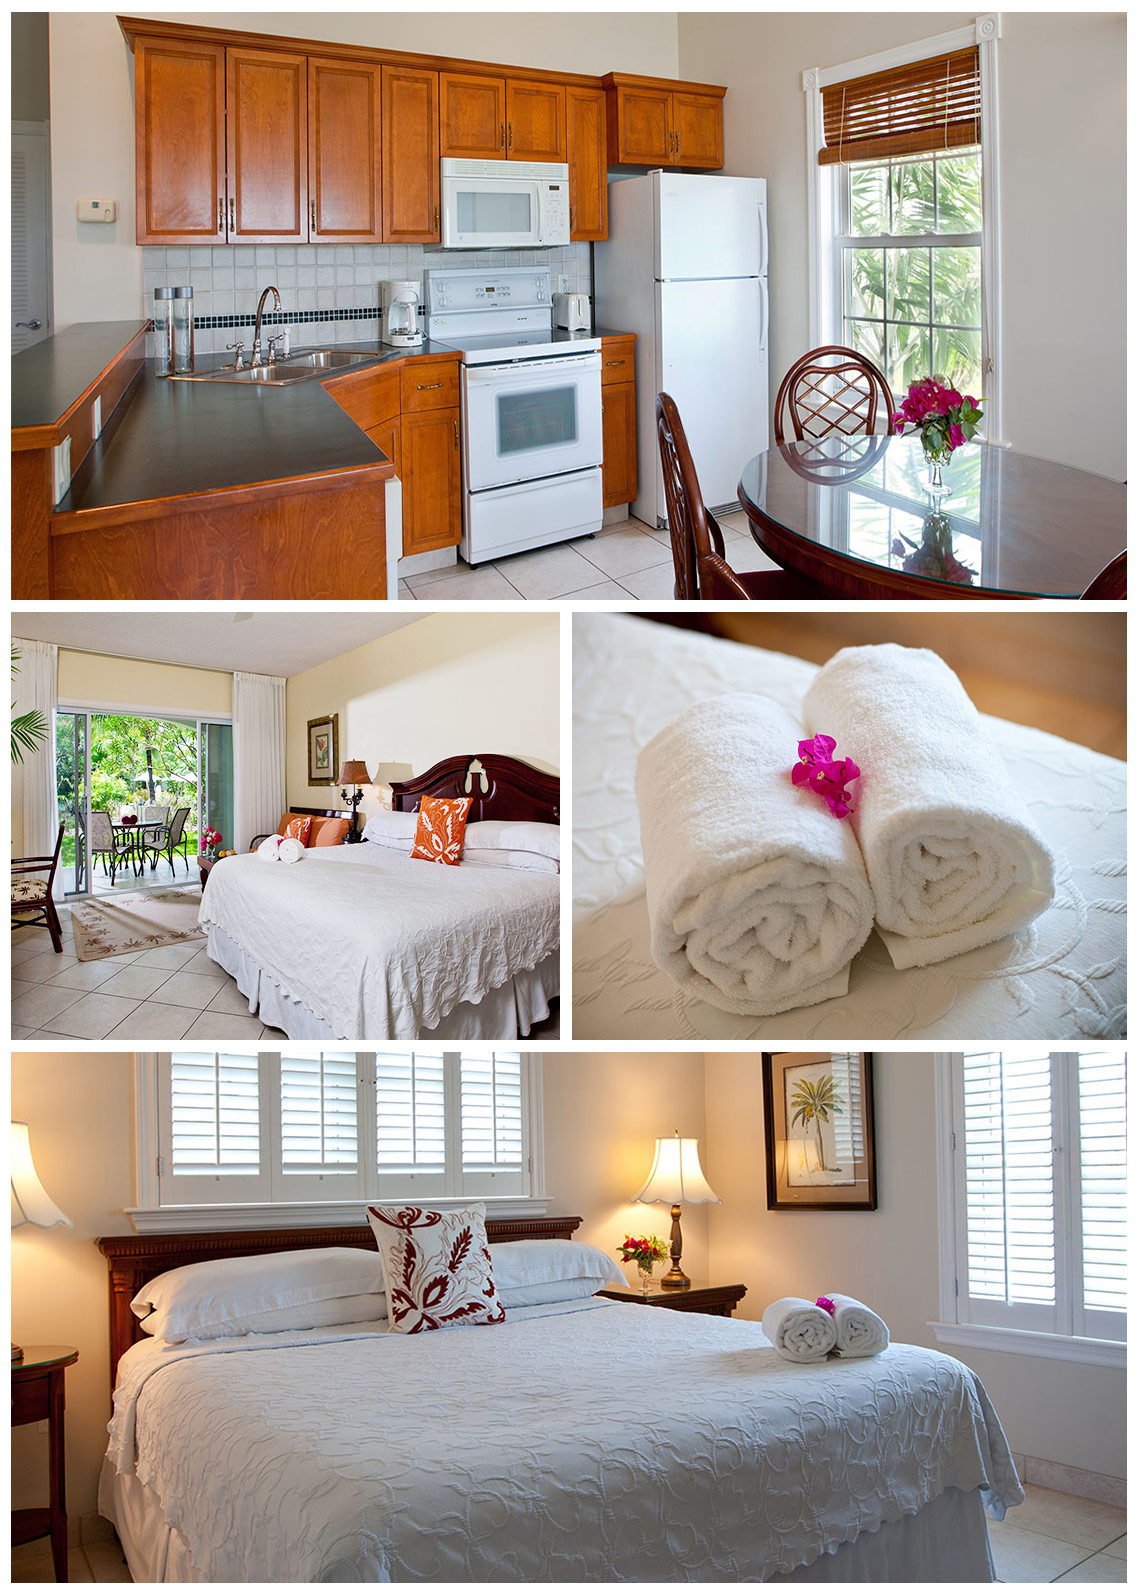 Royal West Indies Kitchen and Bedroom Interior